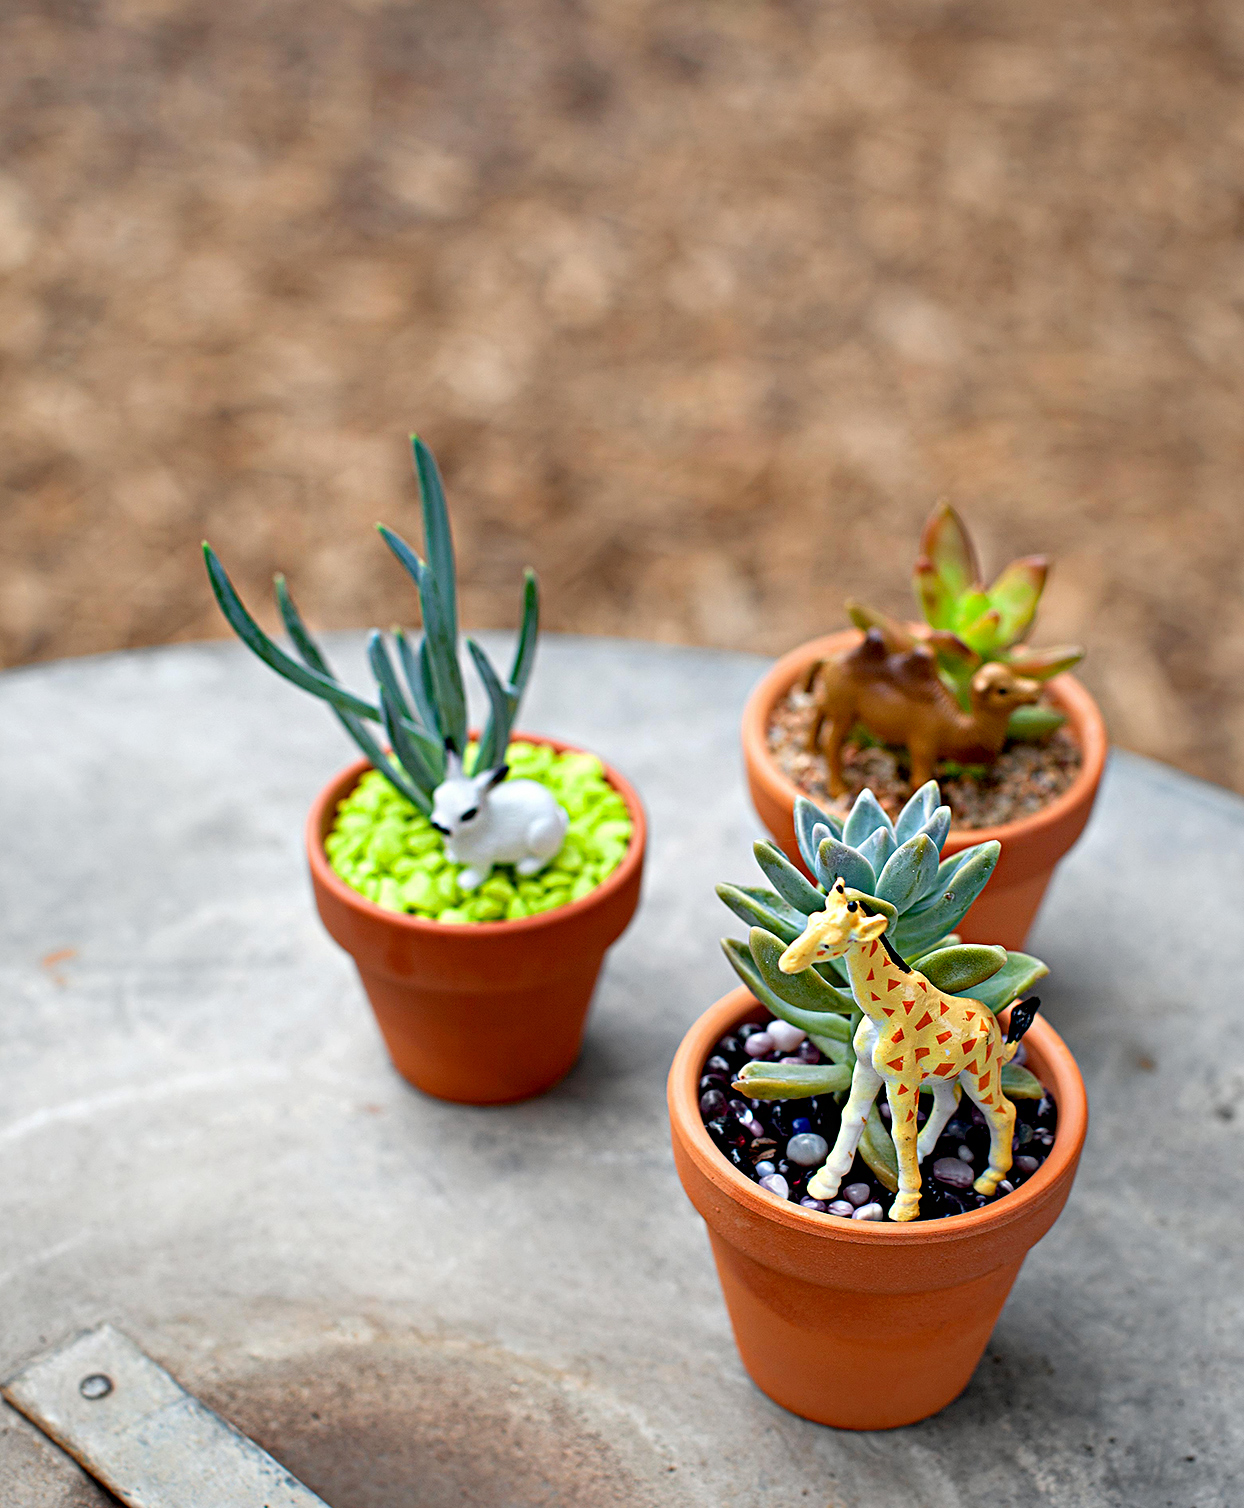 Plastic toys placed in planters